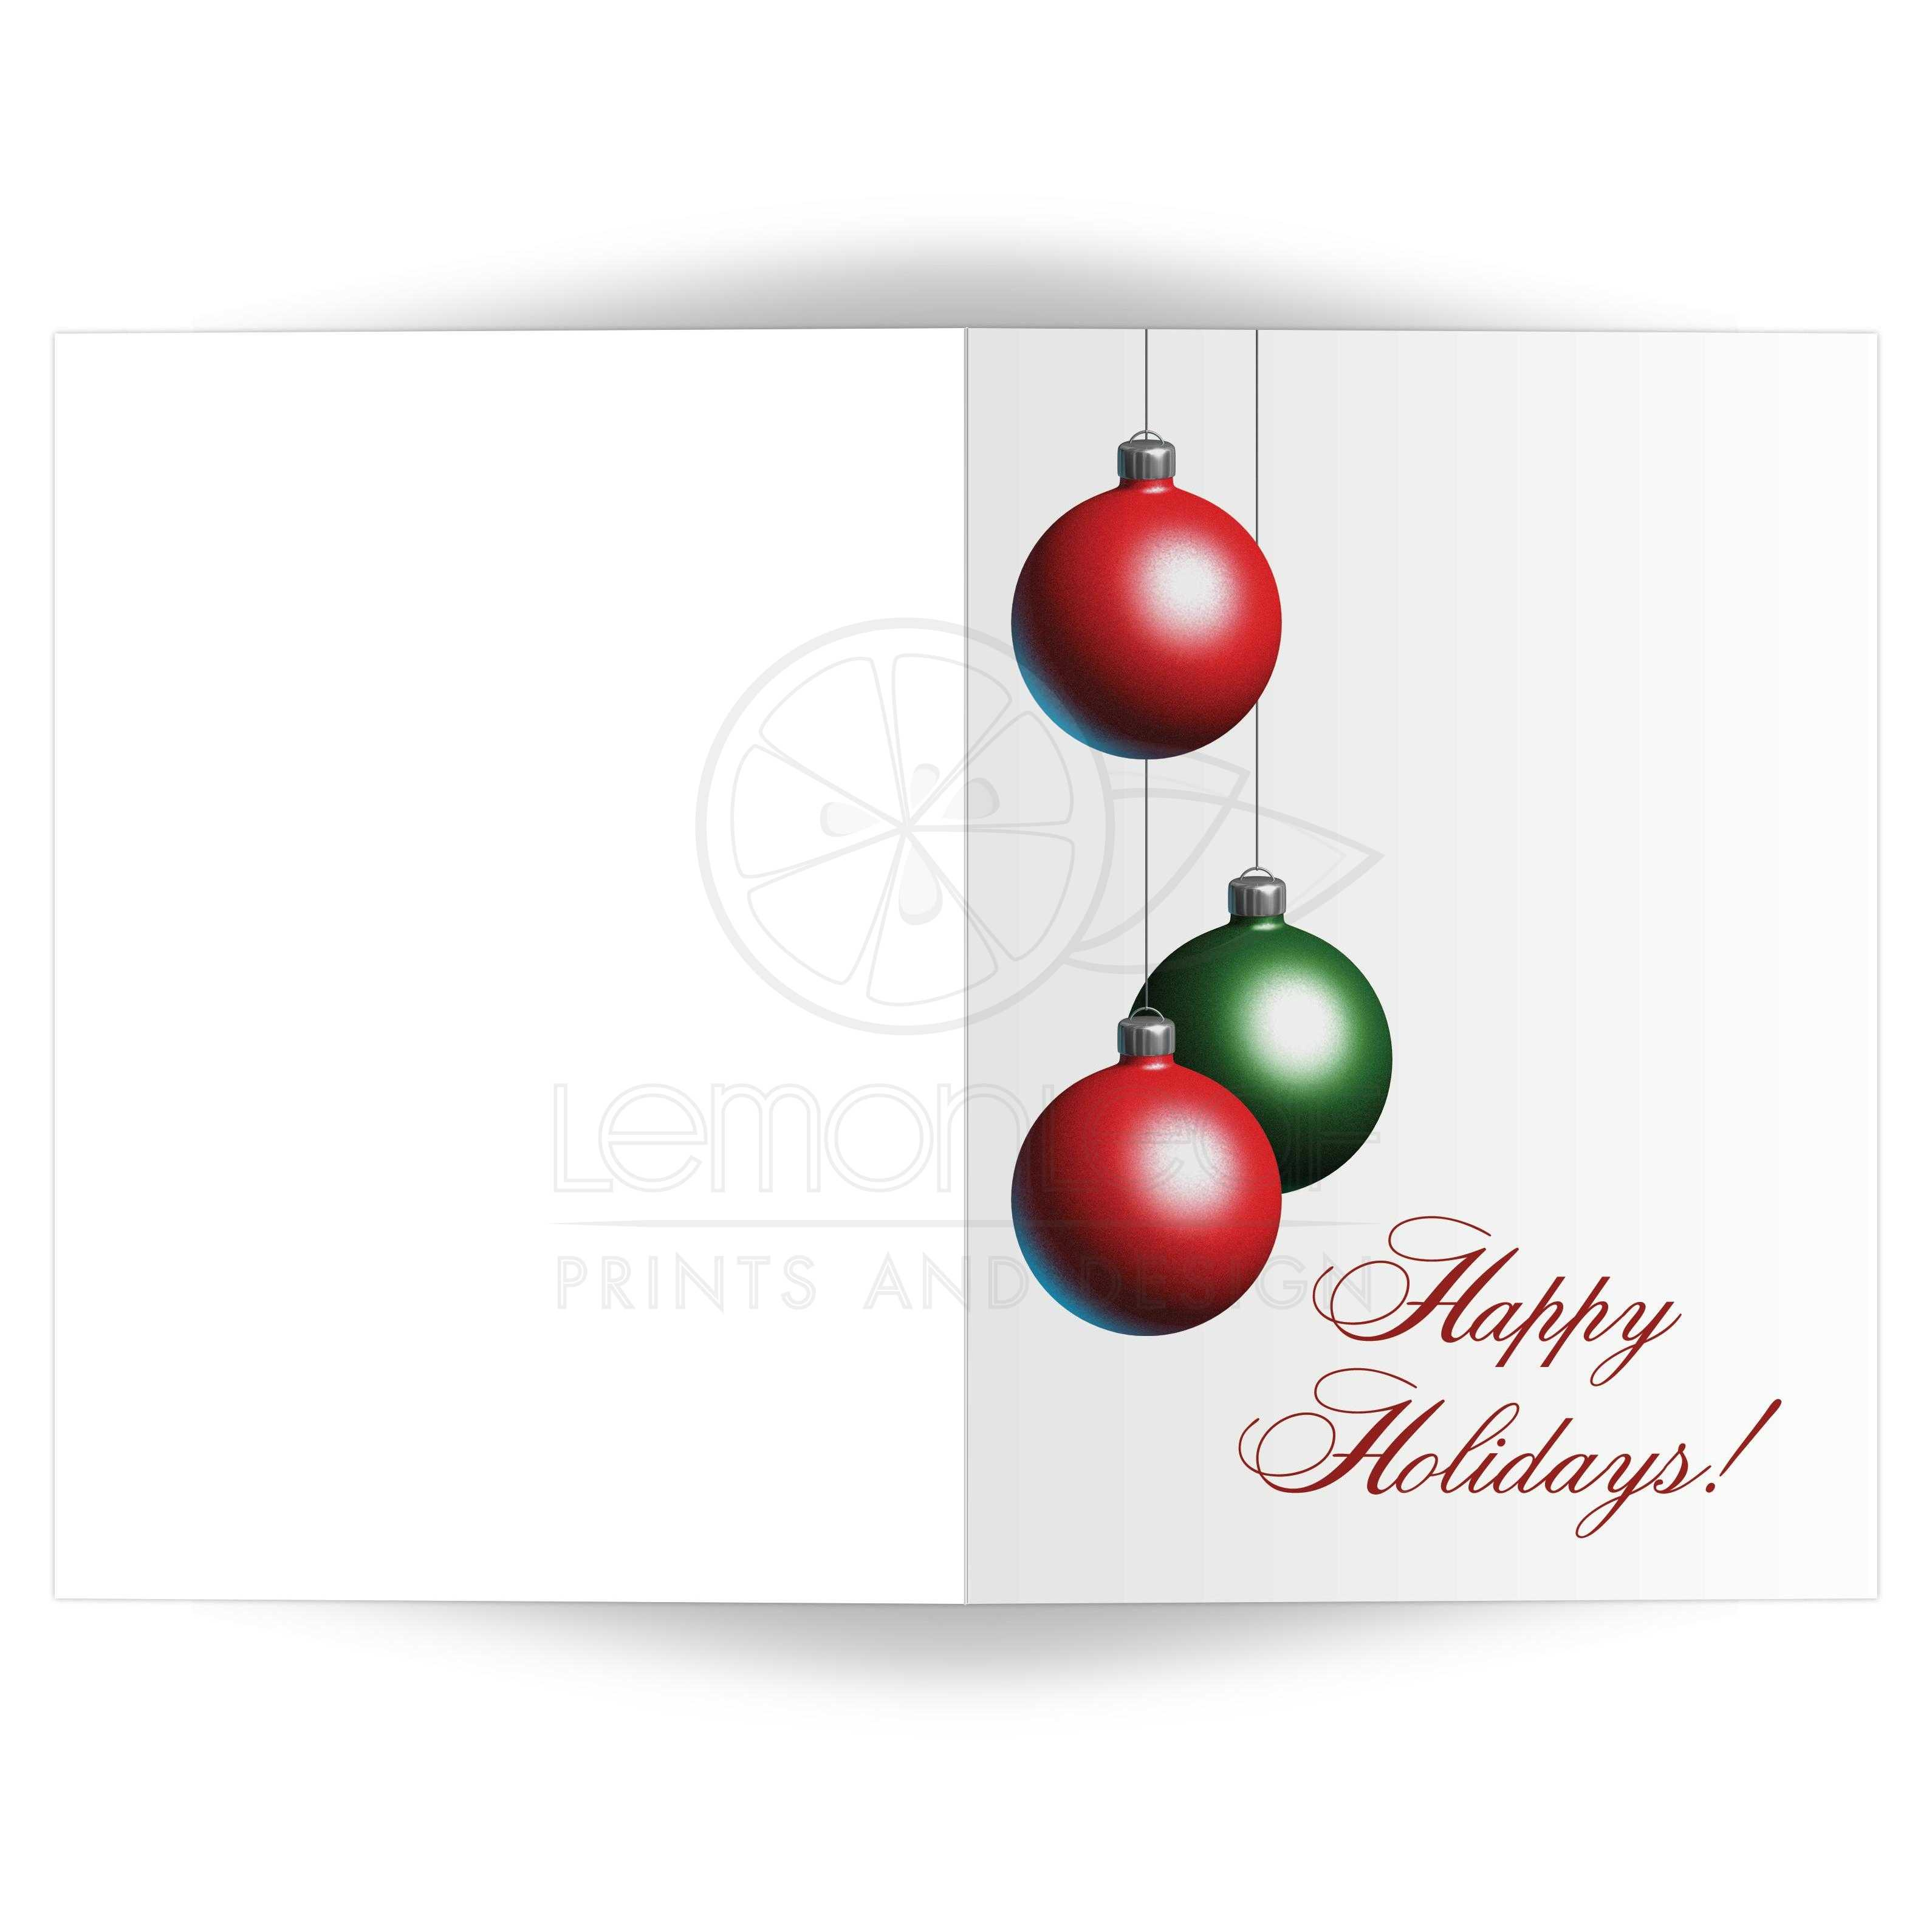 Holiday Card - Ornament Happy Holidays in White (5x7)